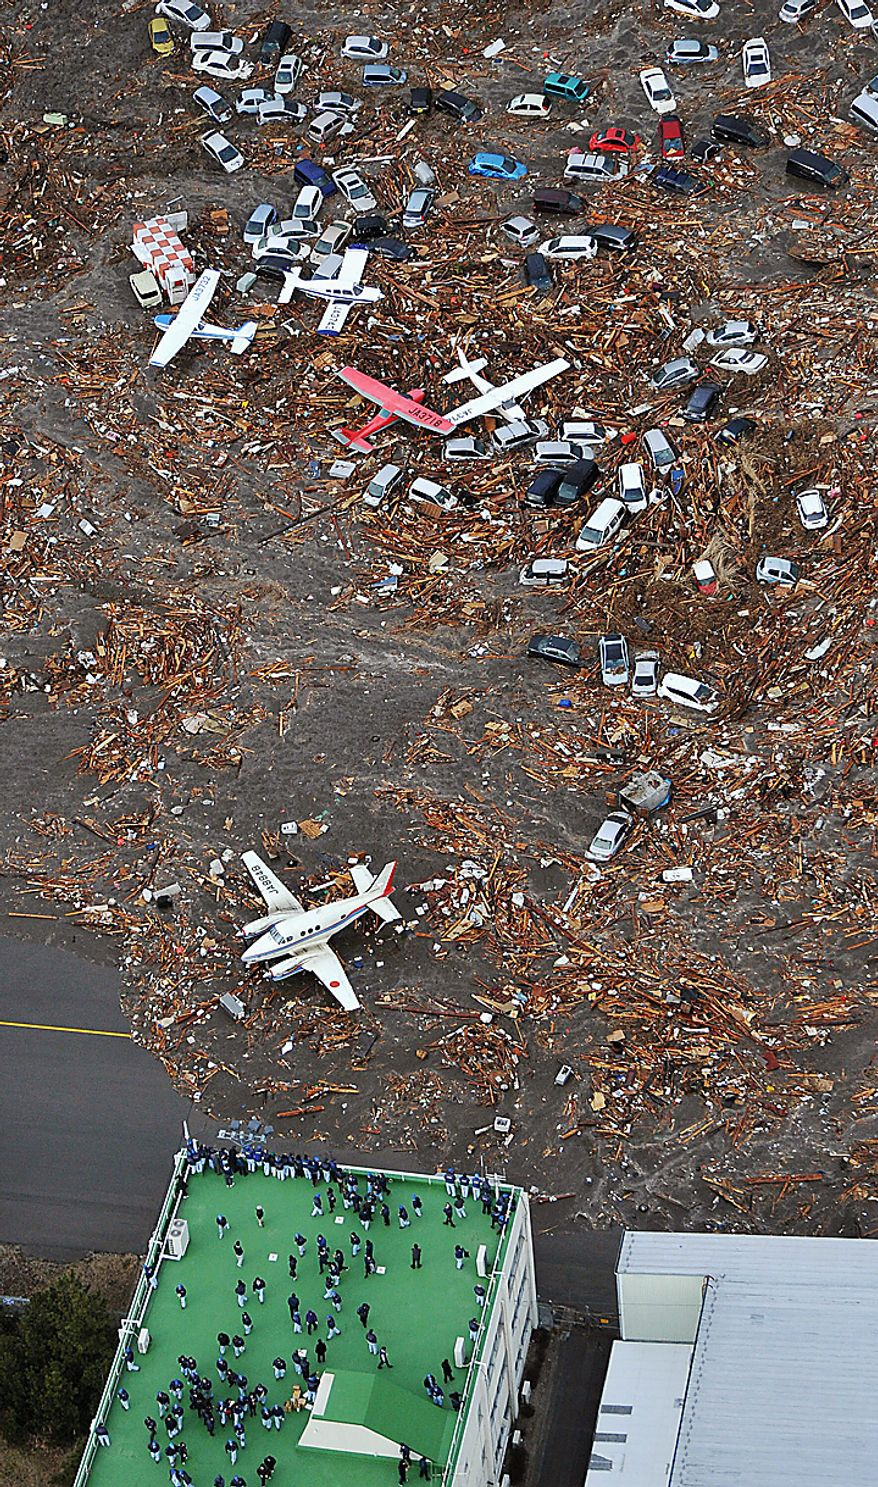 People seek refuge on the rooftop of a building as light planes and vehicles sit among the debris after they were swept by a tsunami that struck Sendai airport in northern Japan on March 11, 2011. A magnitude 8.9 earthquake slammed Japan's eastern coast Friday, unleashing a 13-foot (4-meter) tsunami that swept boats, cars, buildings and tons of debris miles inland. (Associated Press/Kyodo News)